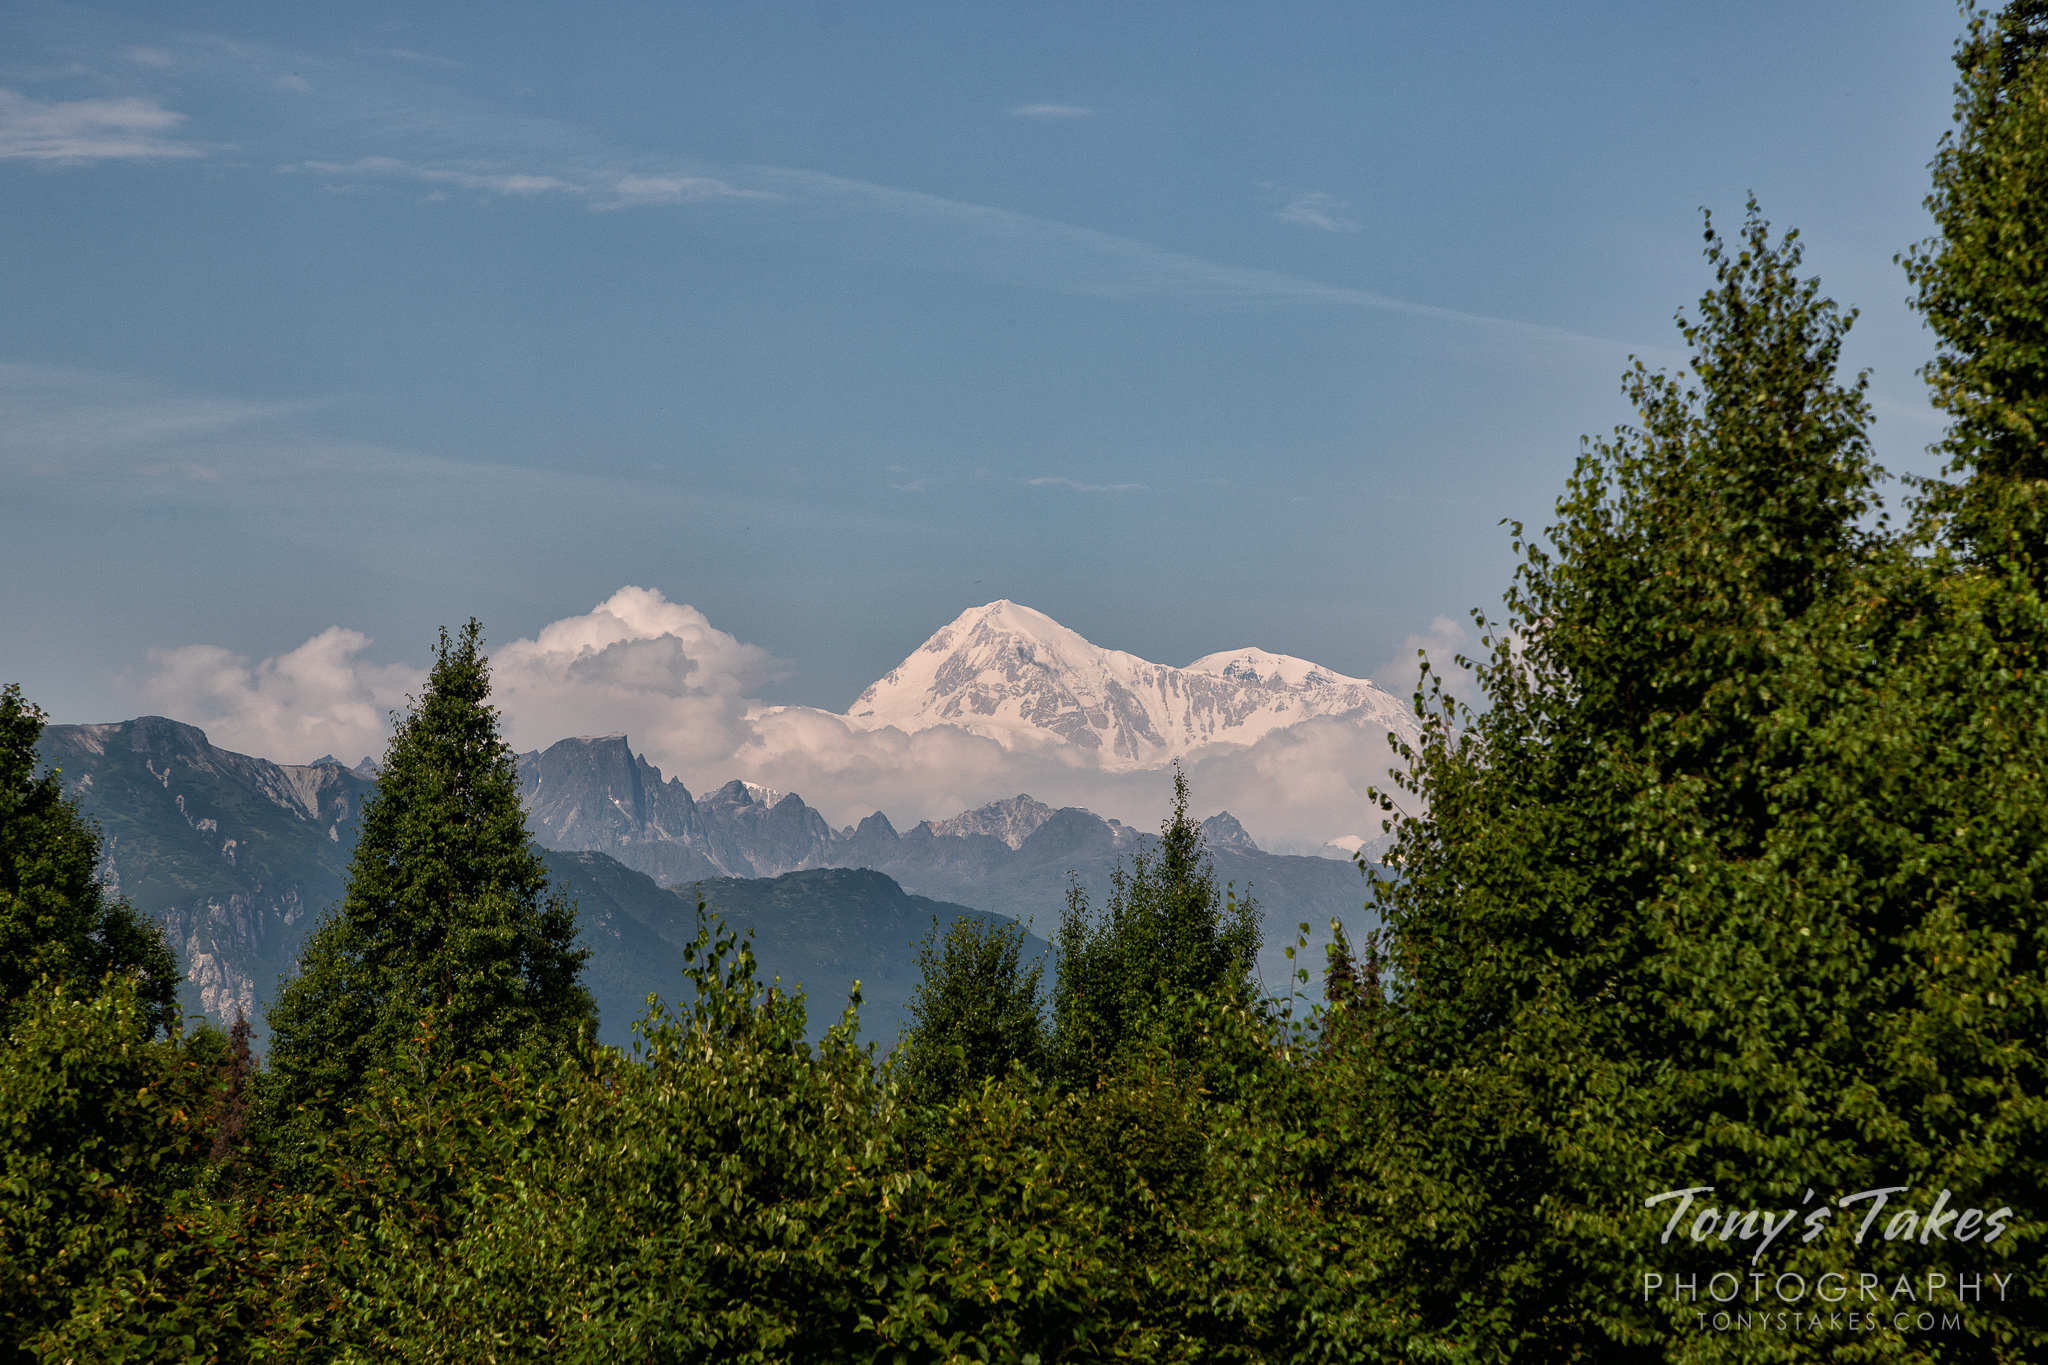 Denali stands tall and proud above the surrounding landscape in Alaska. (© Tony's Takes)